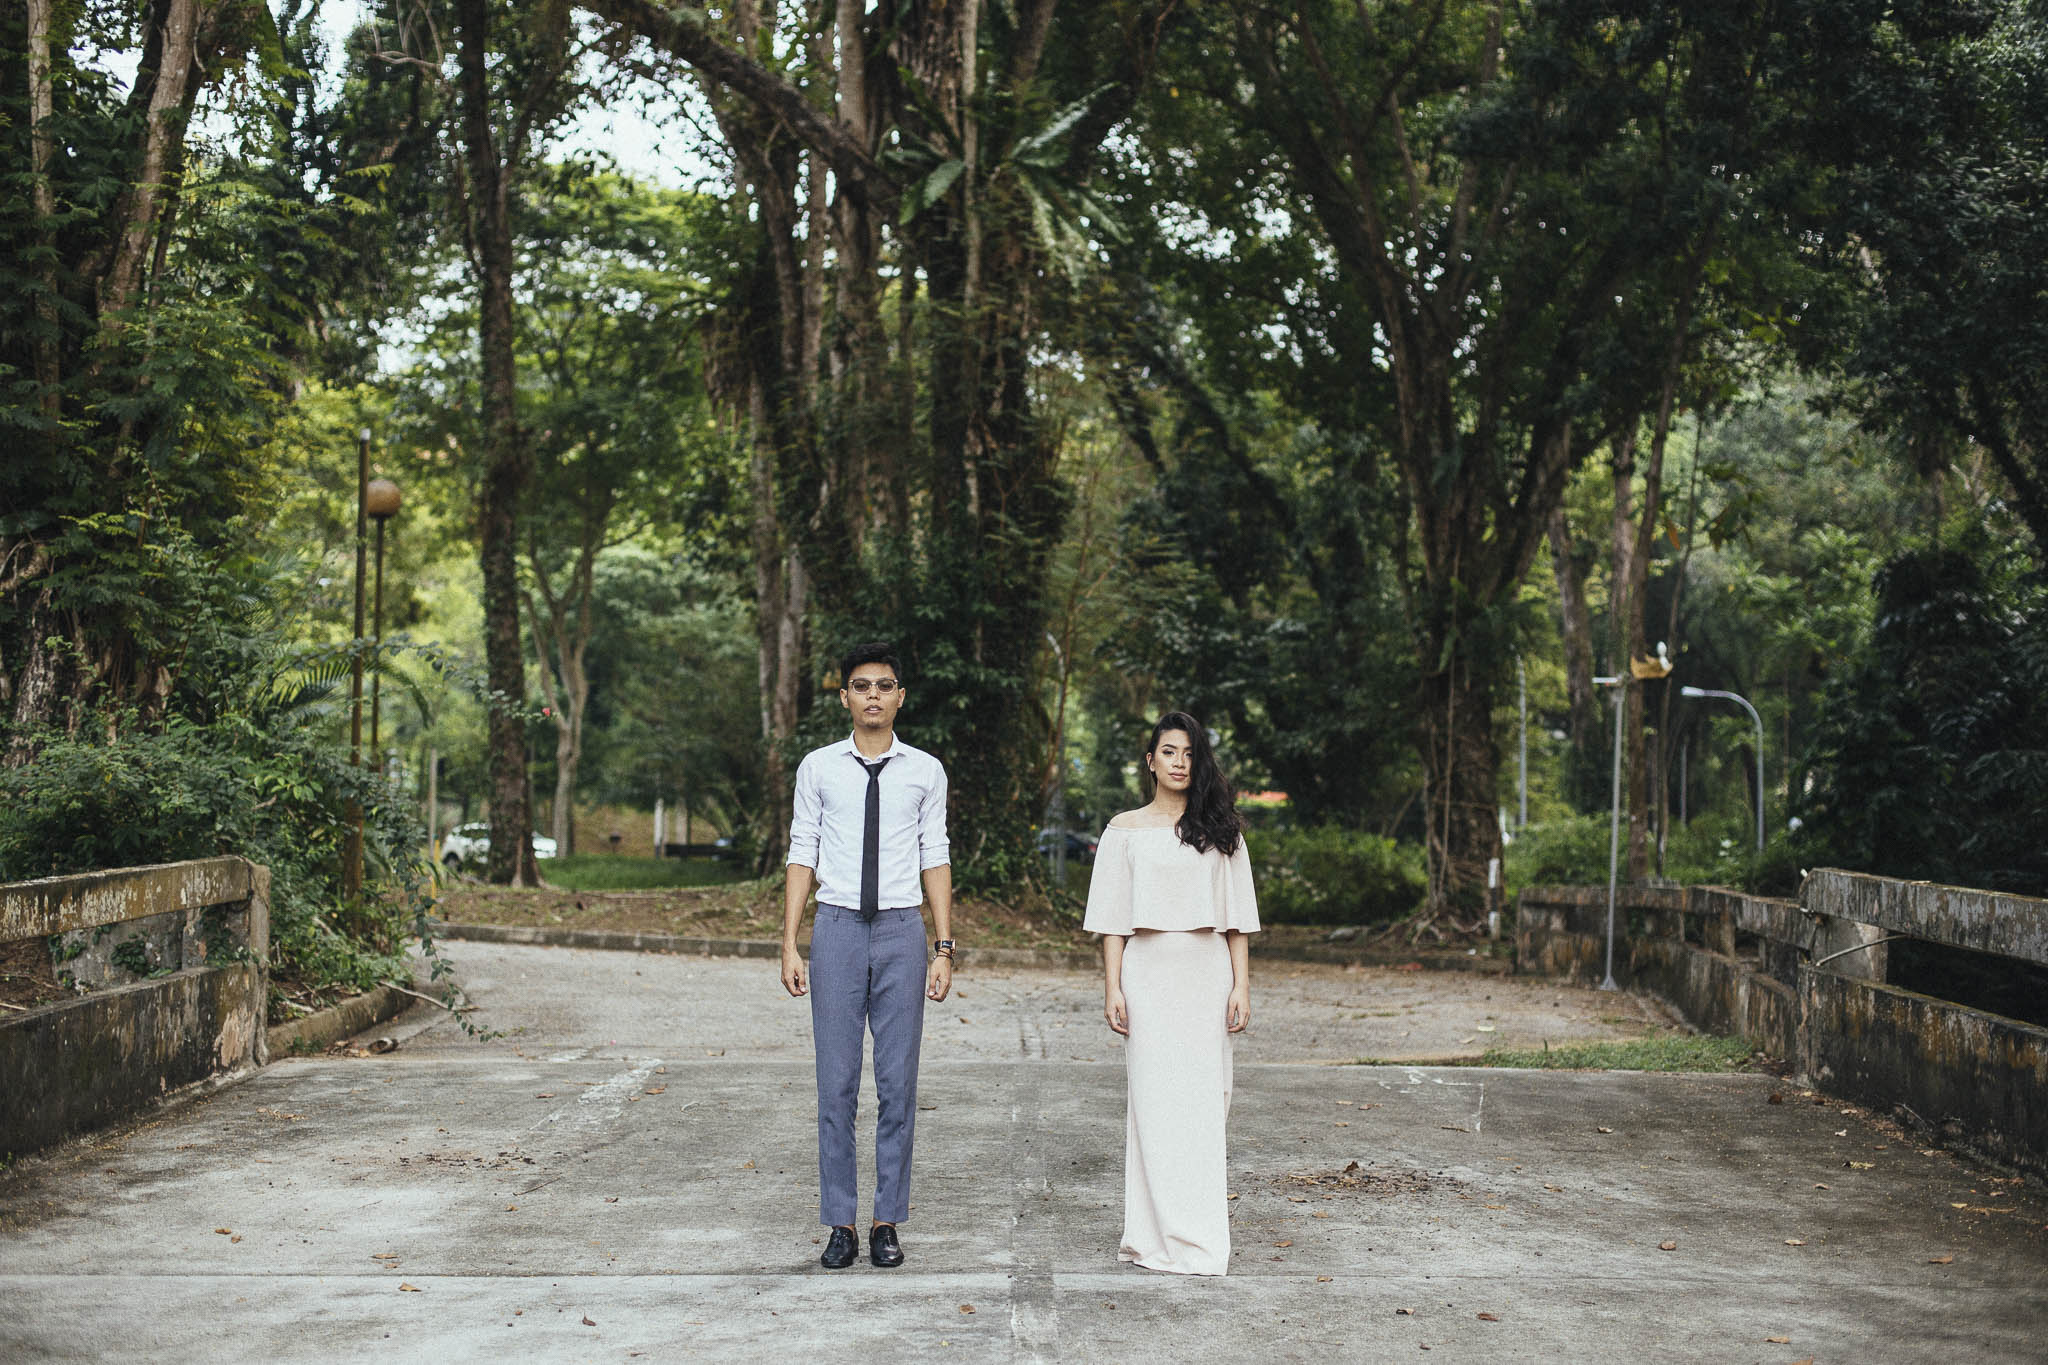 singapore-wedding-photographer-malay-travel-adli-tashah-09.jpg